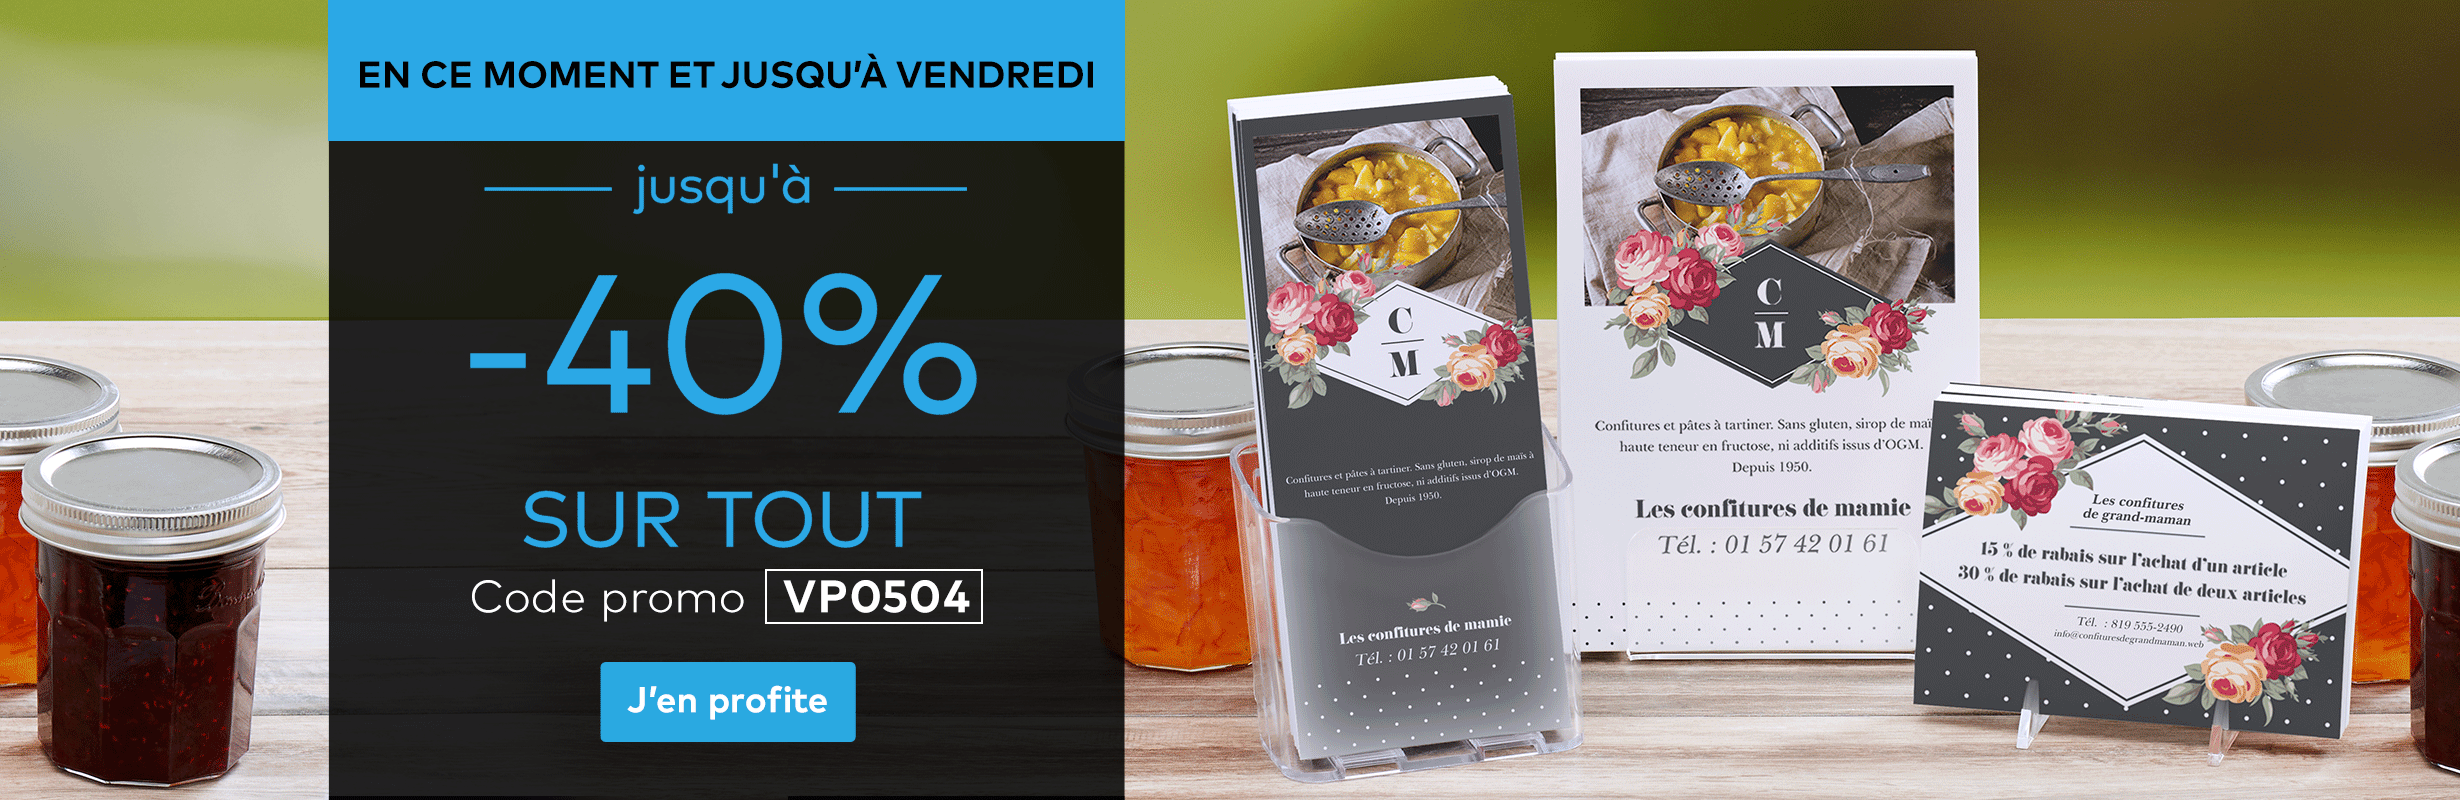 Vistaprint Cartes De Visite Flyers Banderoles Invitations